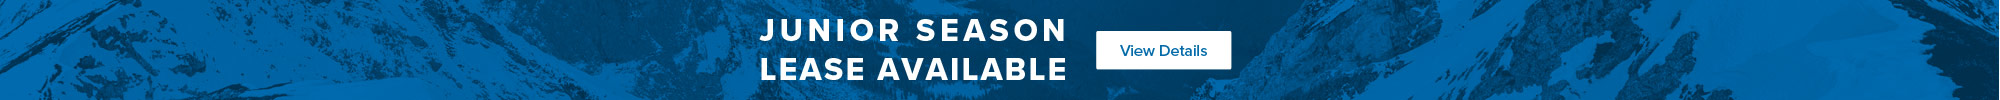 Junior Ski & Snowboard Lease Program Available